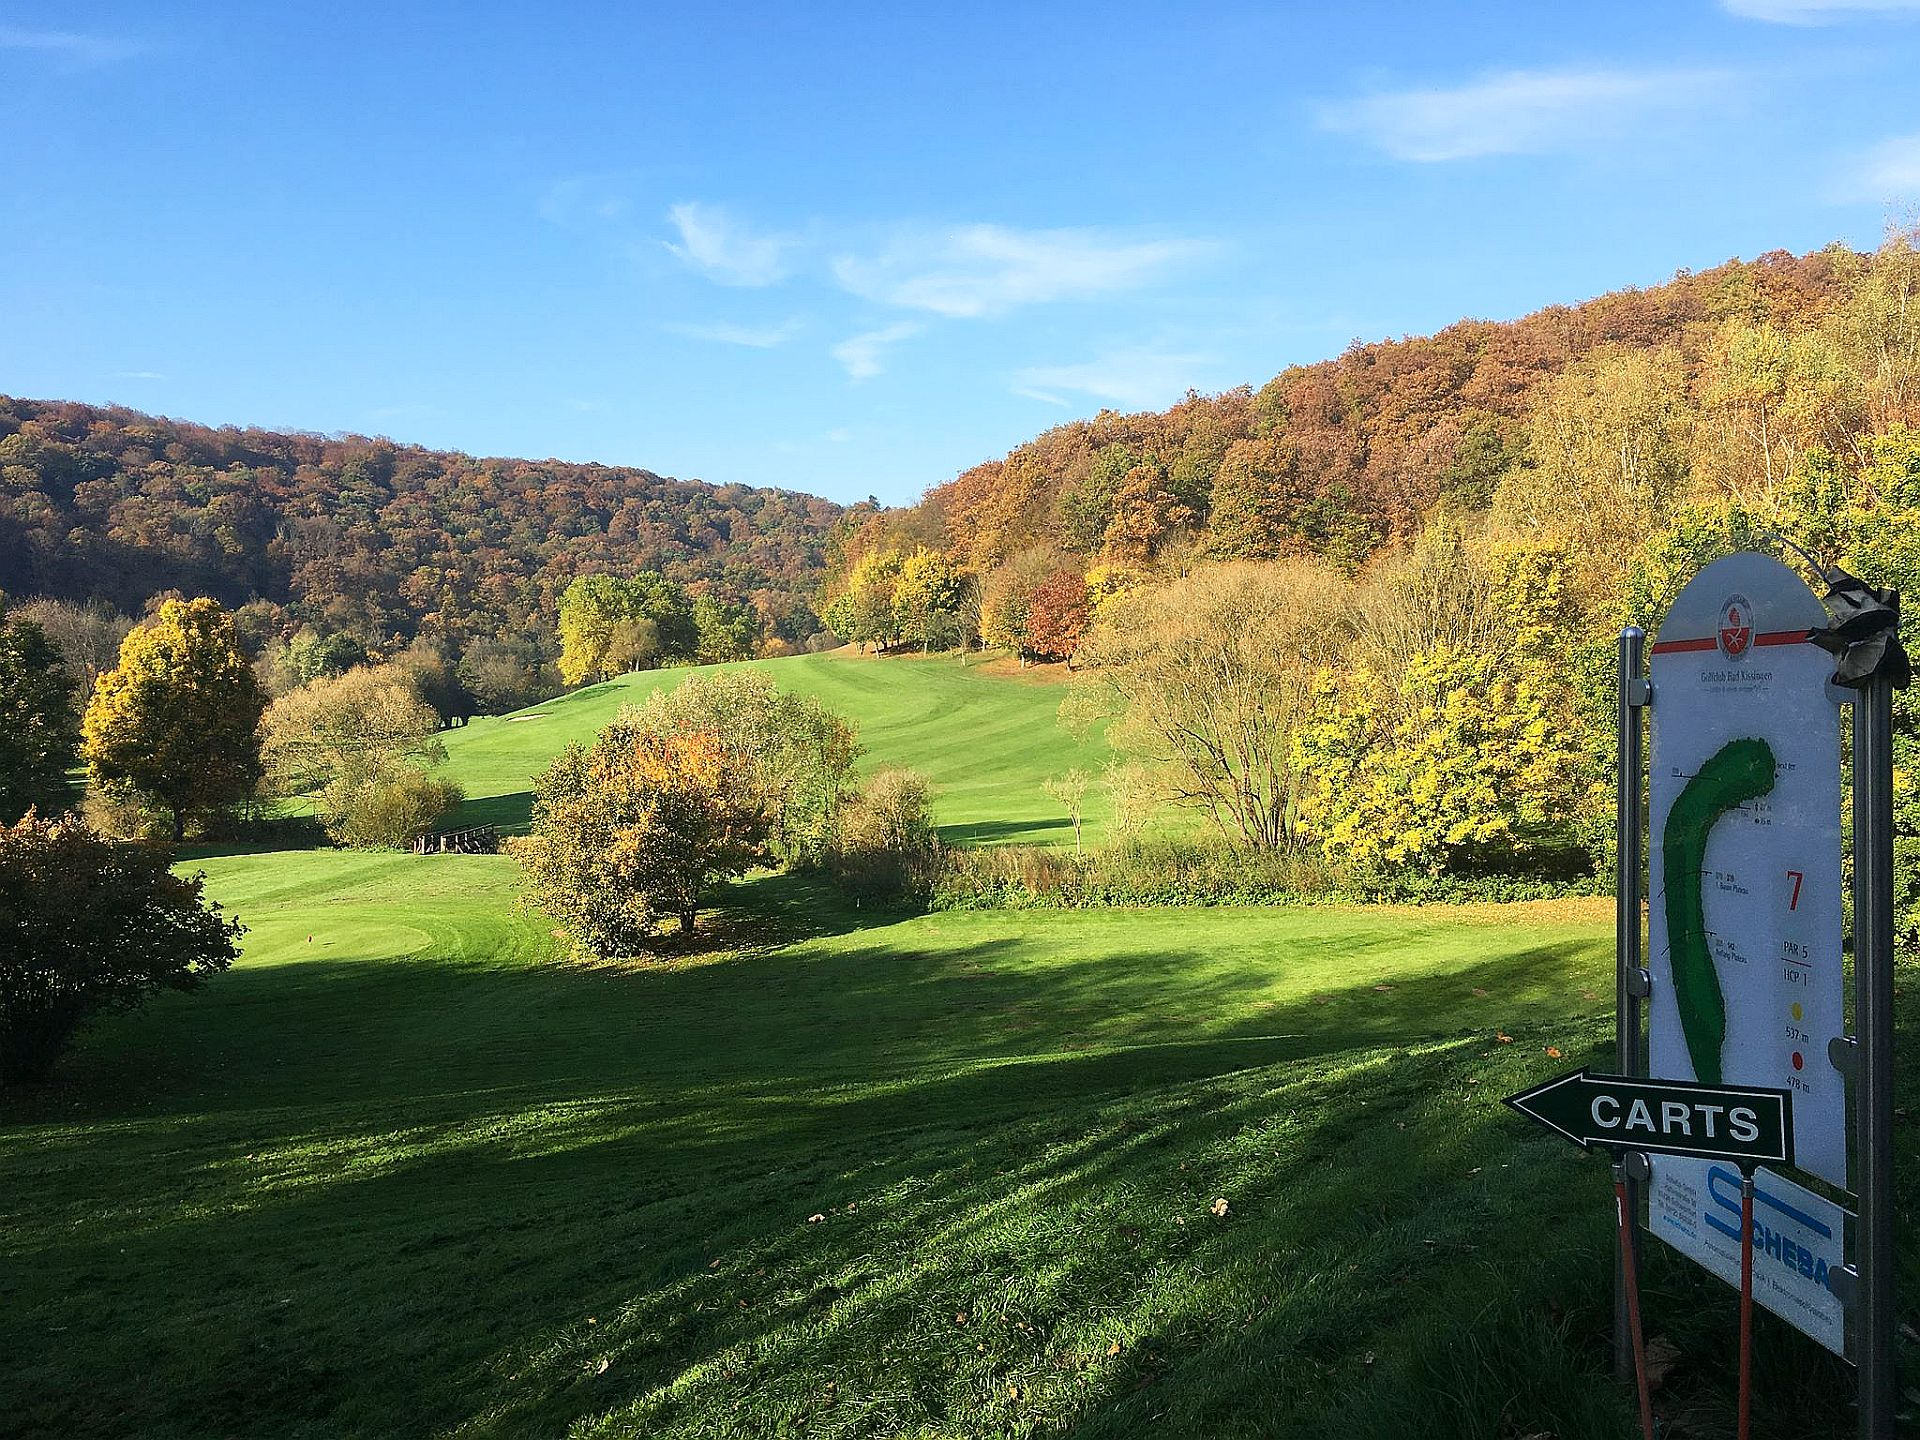 Golfclub Bad Kissingen, Bahn 7/Foto: Dietmar Fella